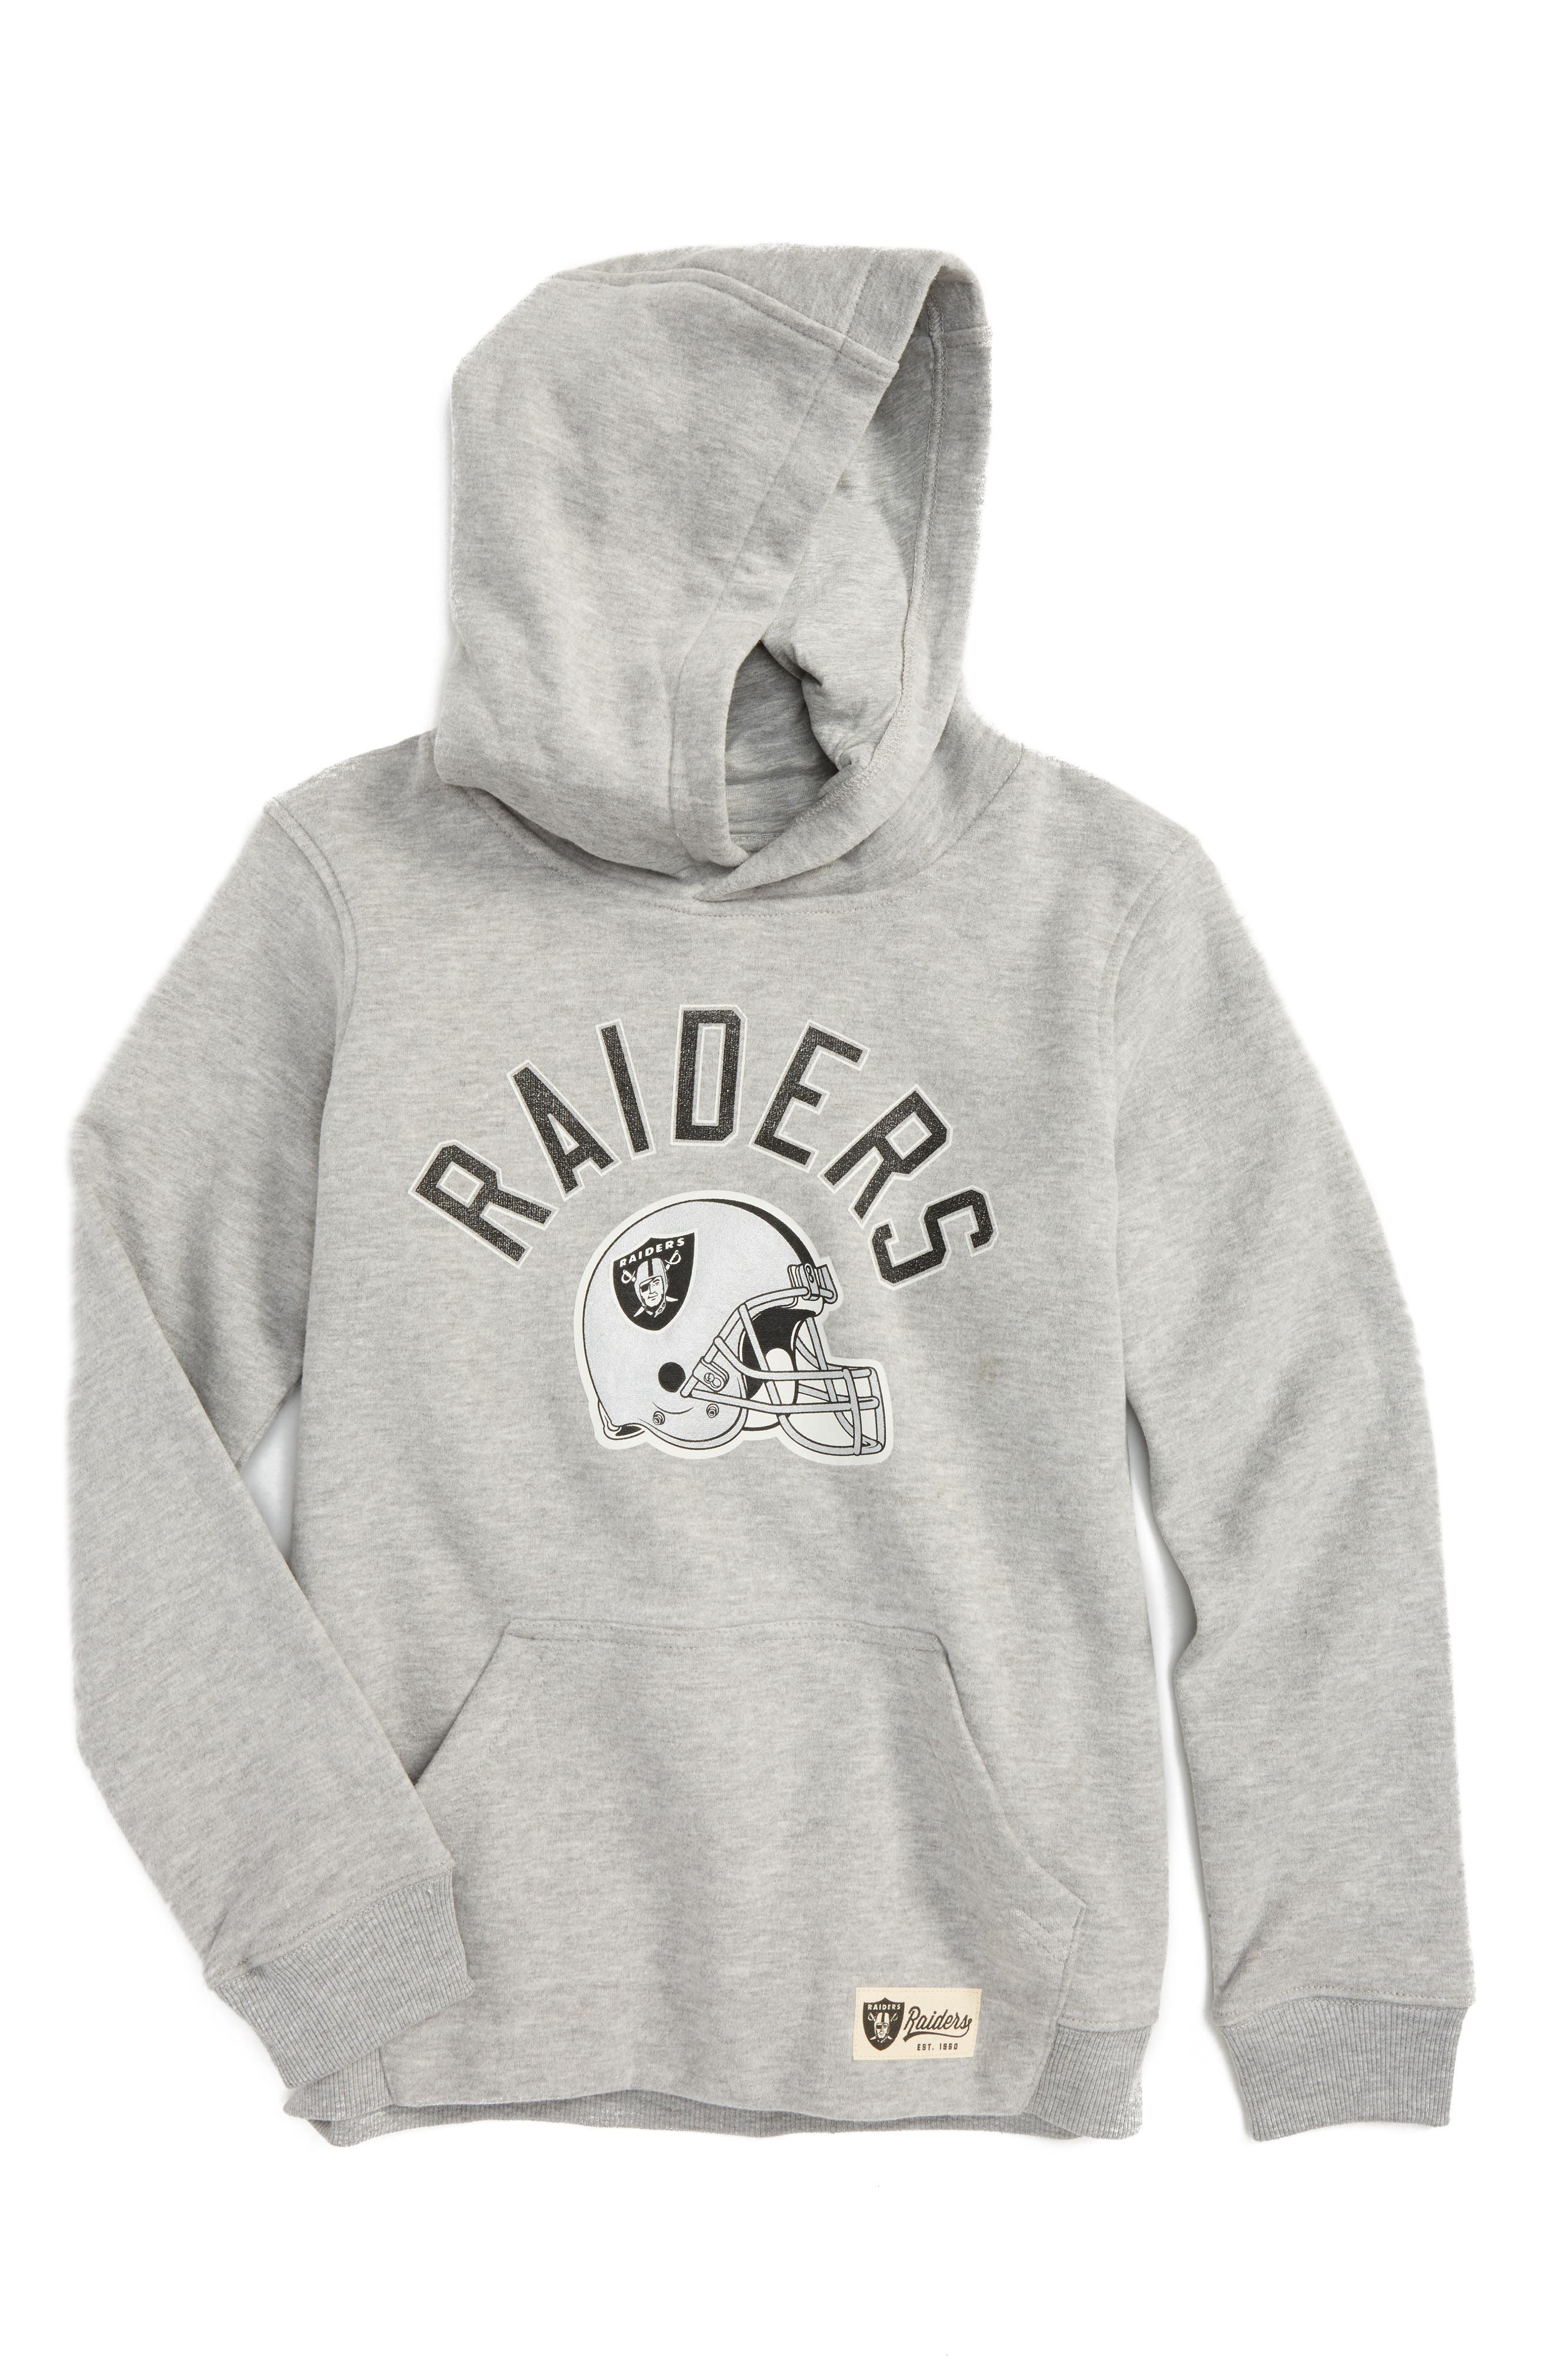 Alternate Image 1 Selected - Outerstuff NFL Oakland Raiders Pullover Hoodie (Big Boys)